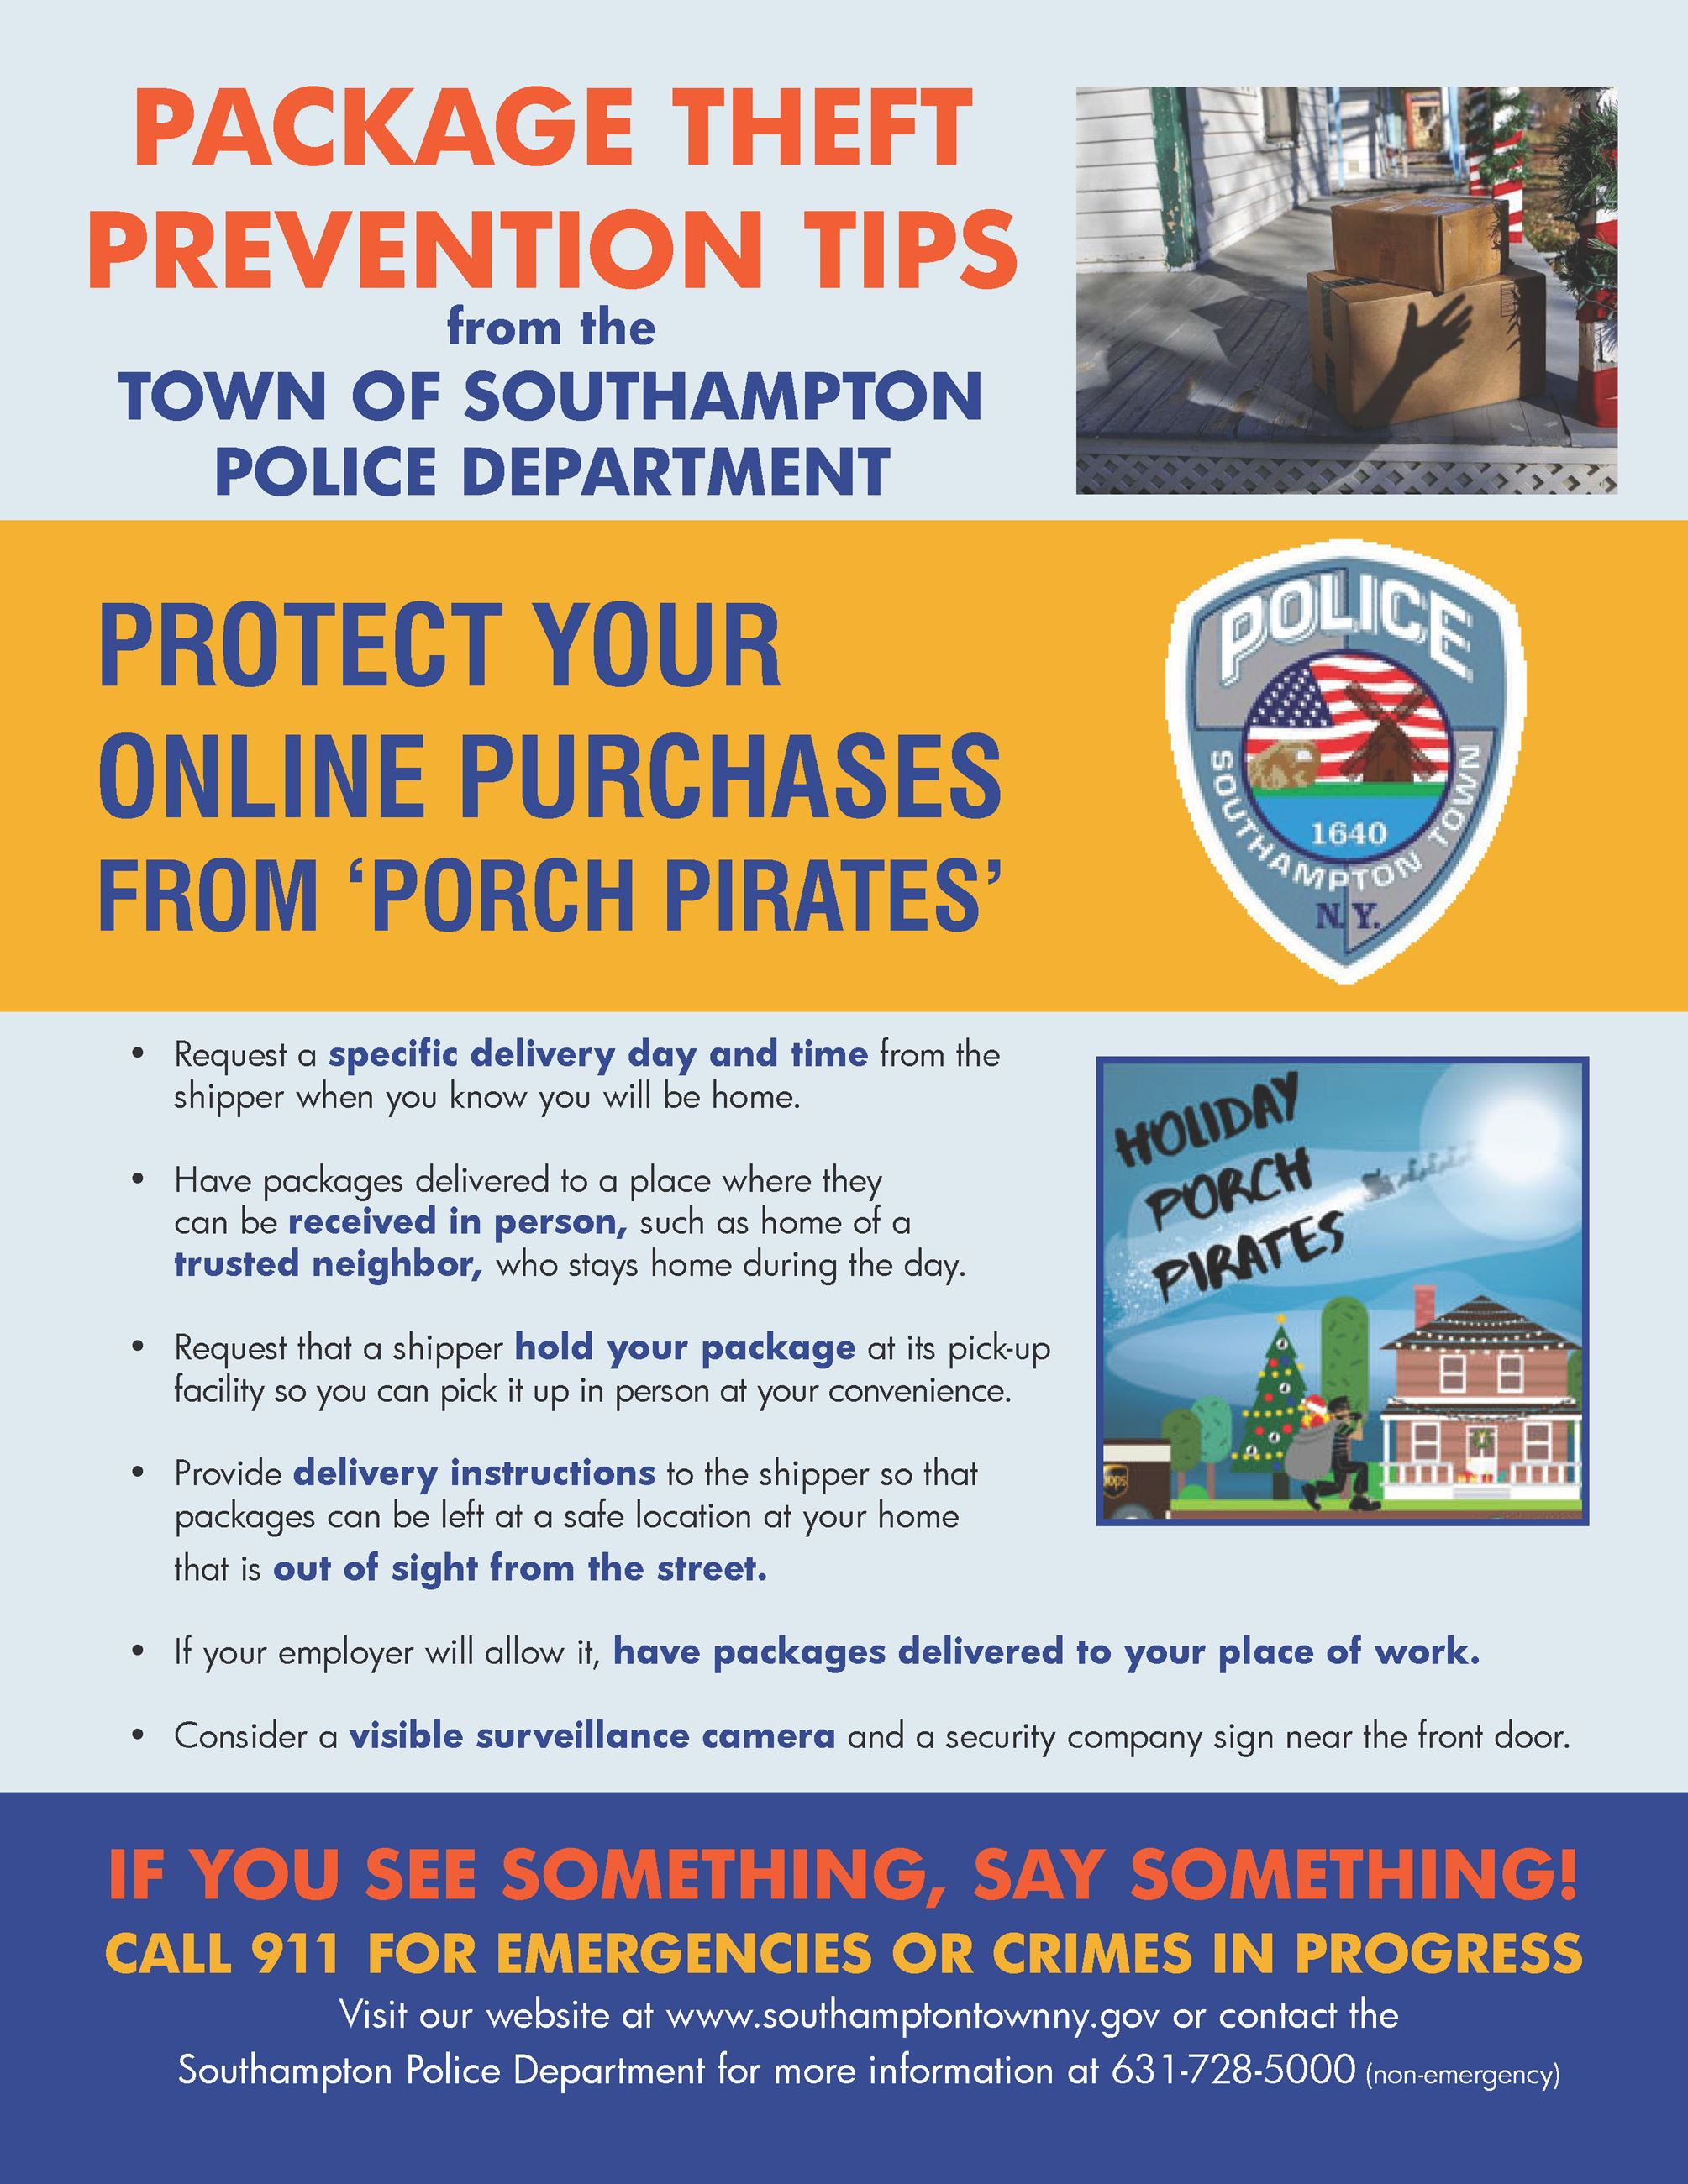 PROTECT YOUR ONLINE PURCHASES